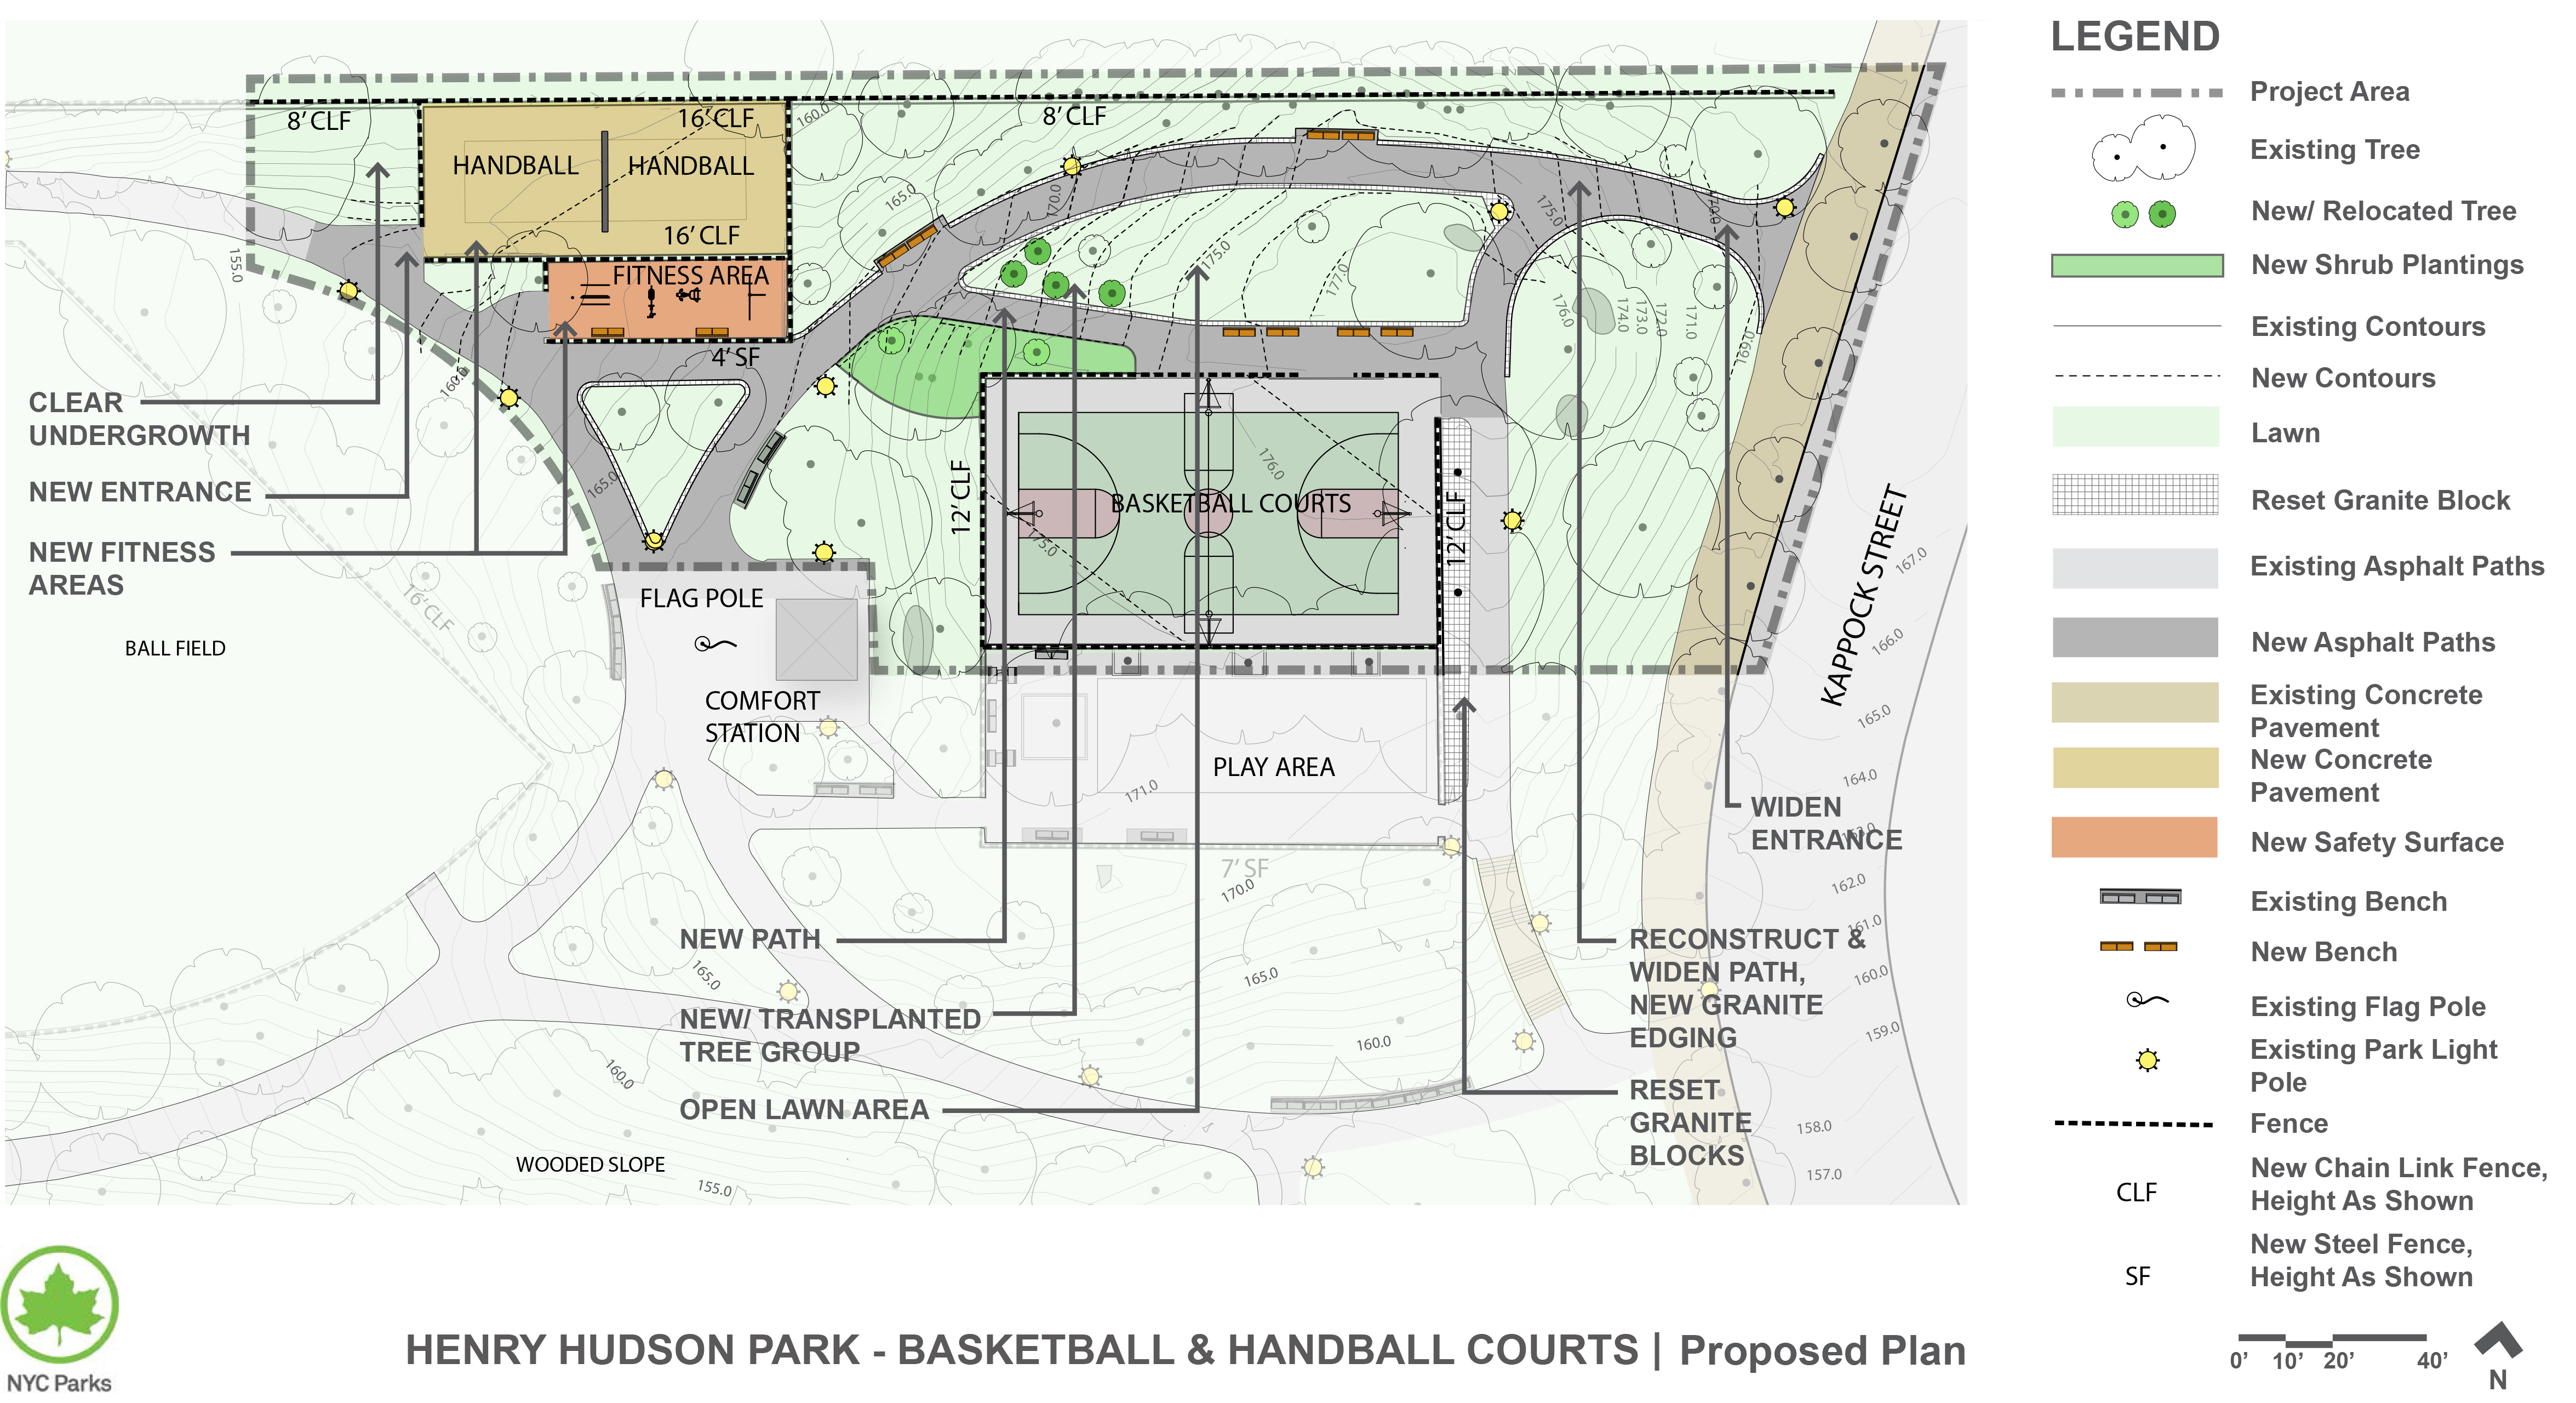 Design of Henry Hudson Park Basketball and Handball Courts Reconstruction